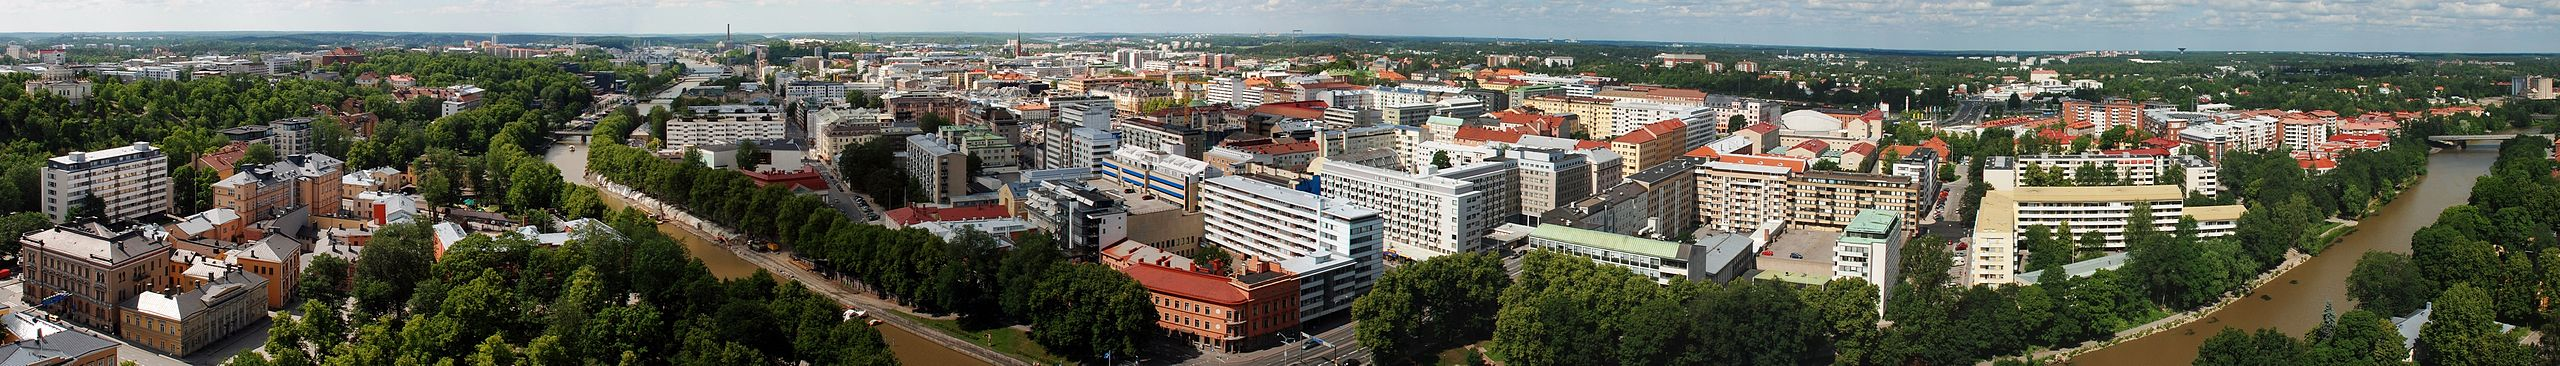 Turku – Travel guide at Wikivoyage 5f426099c7